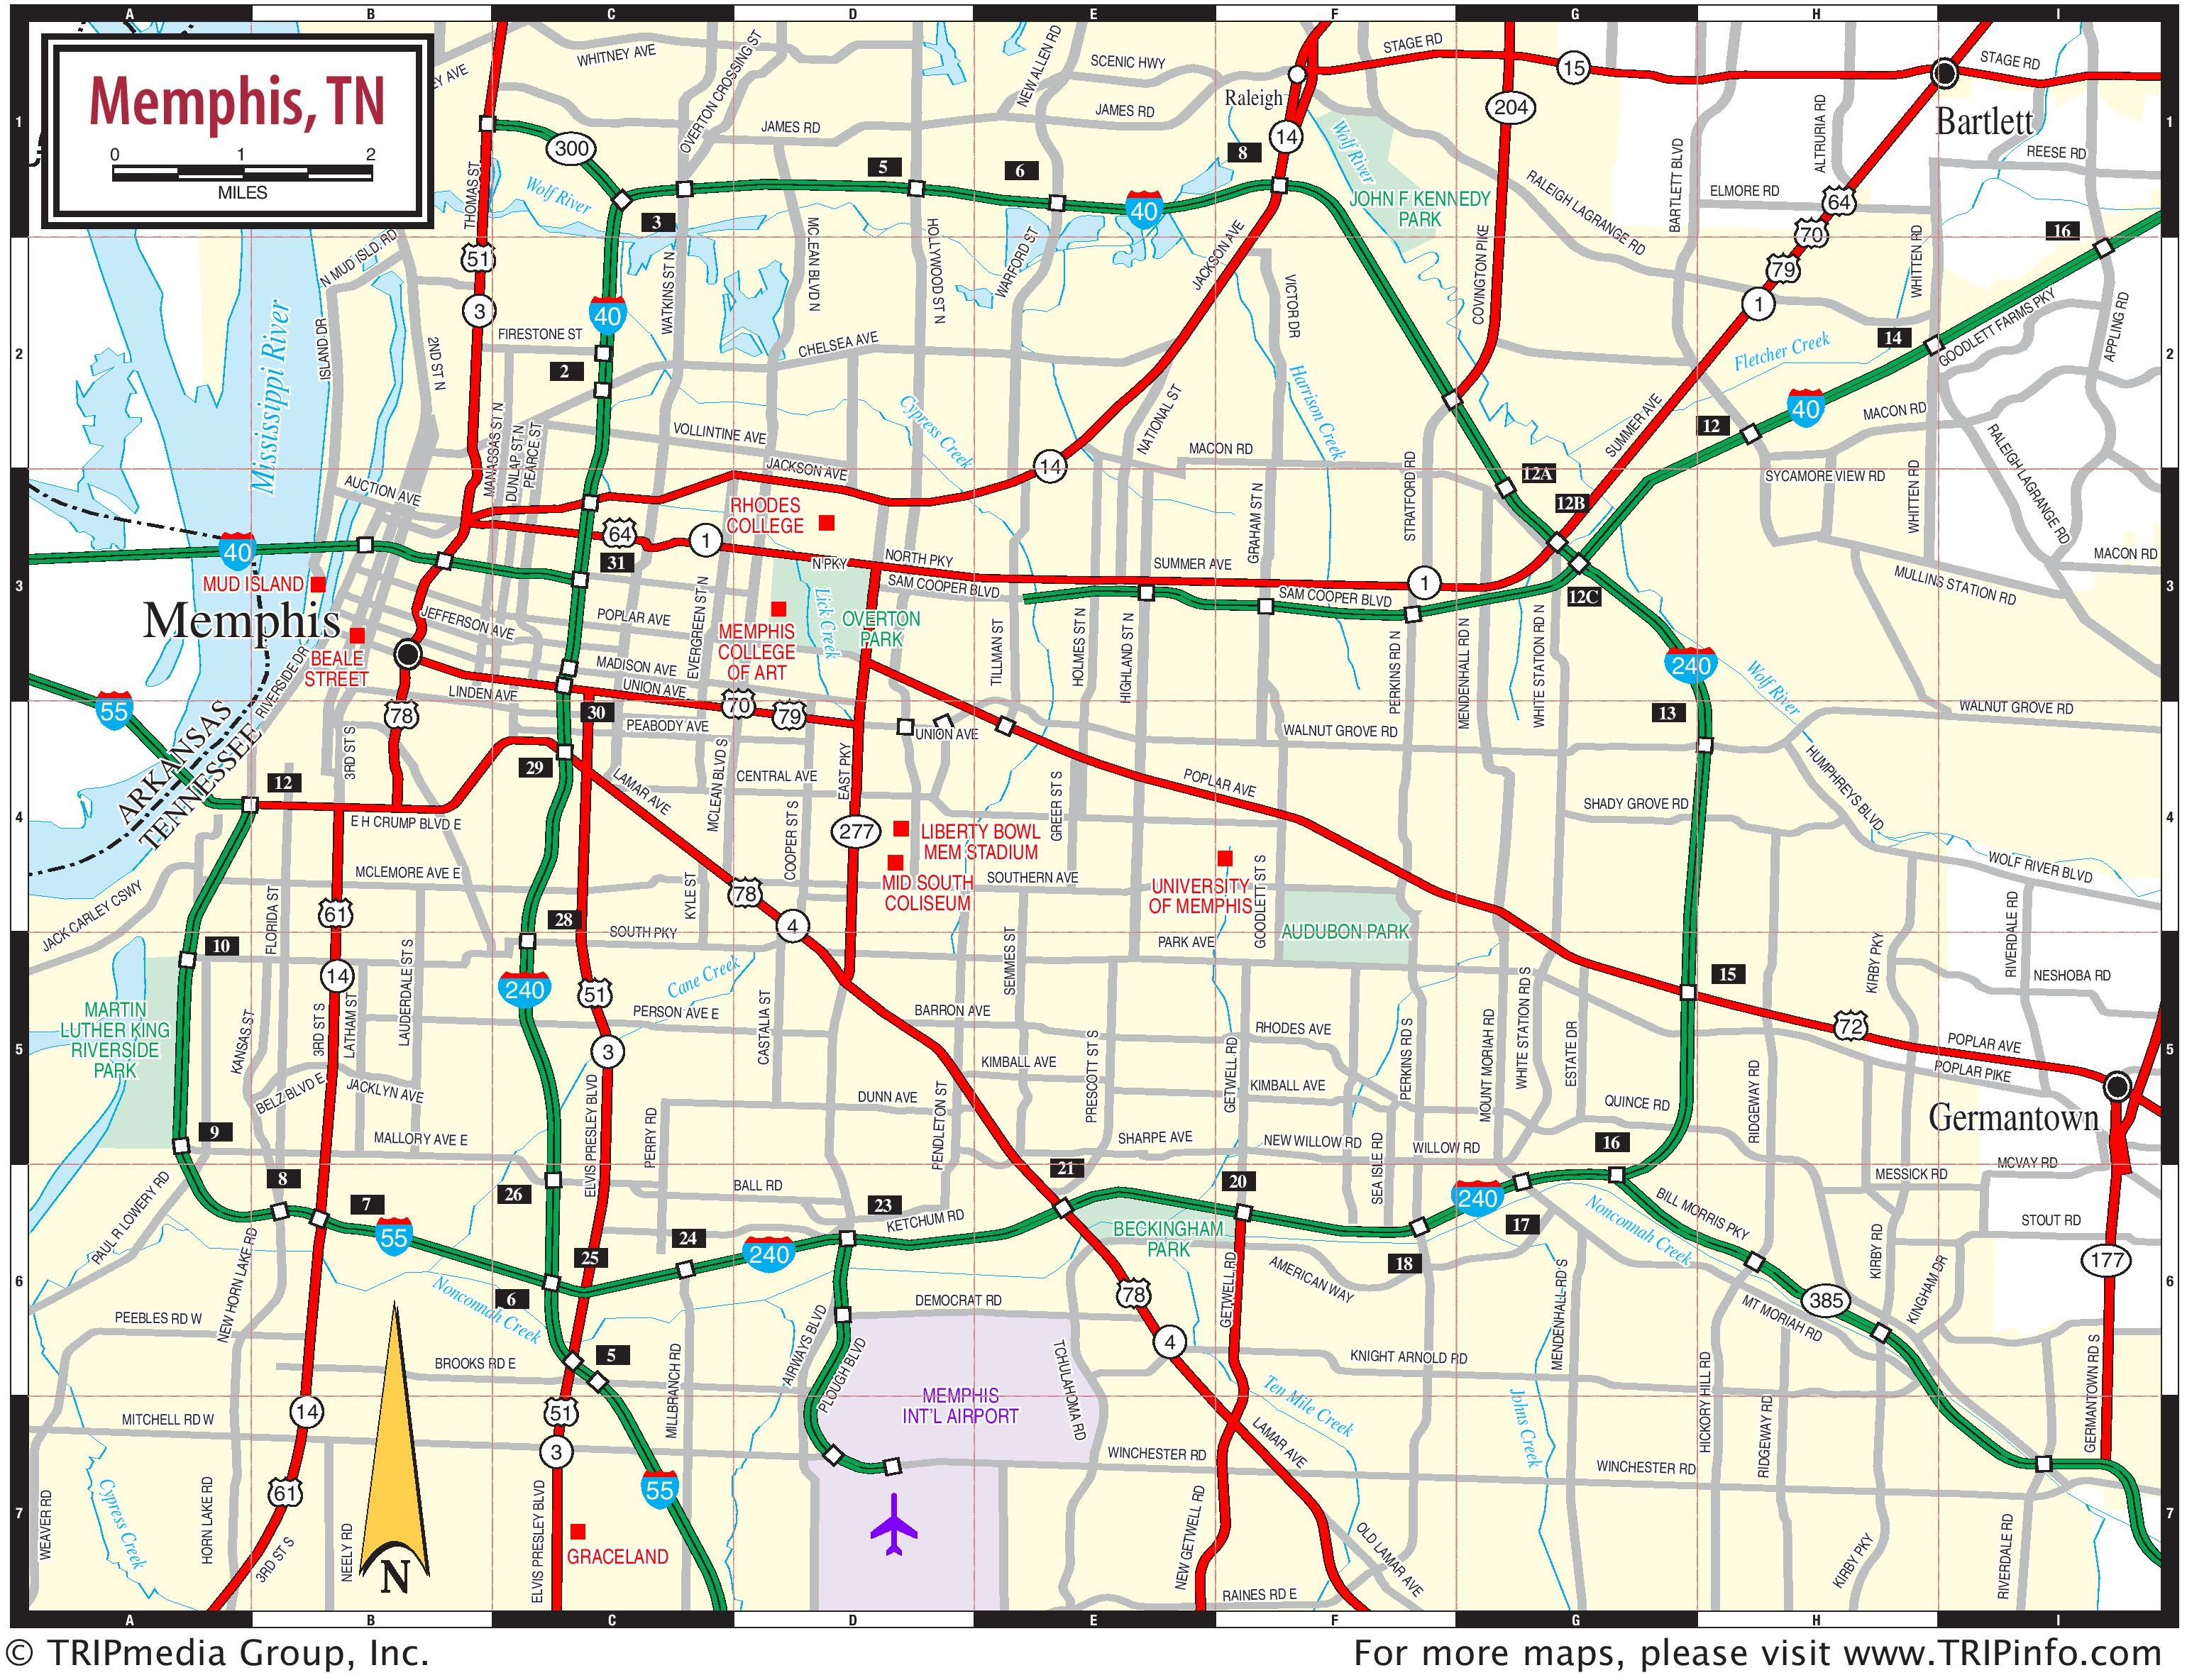 Map Of Memphis Tennessee Memphis area road map